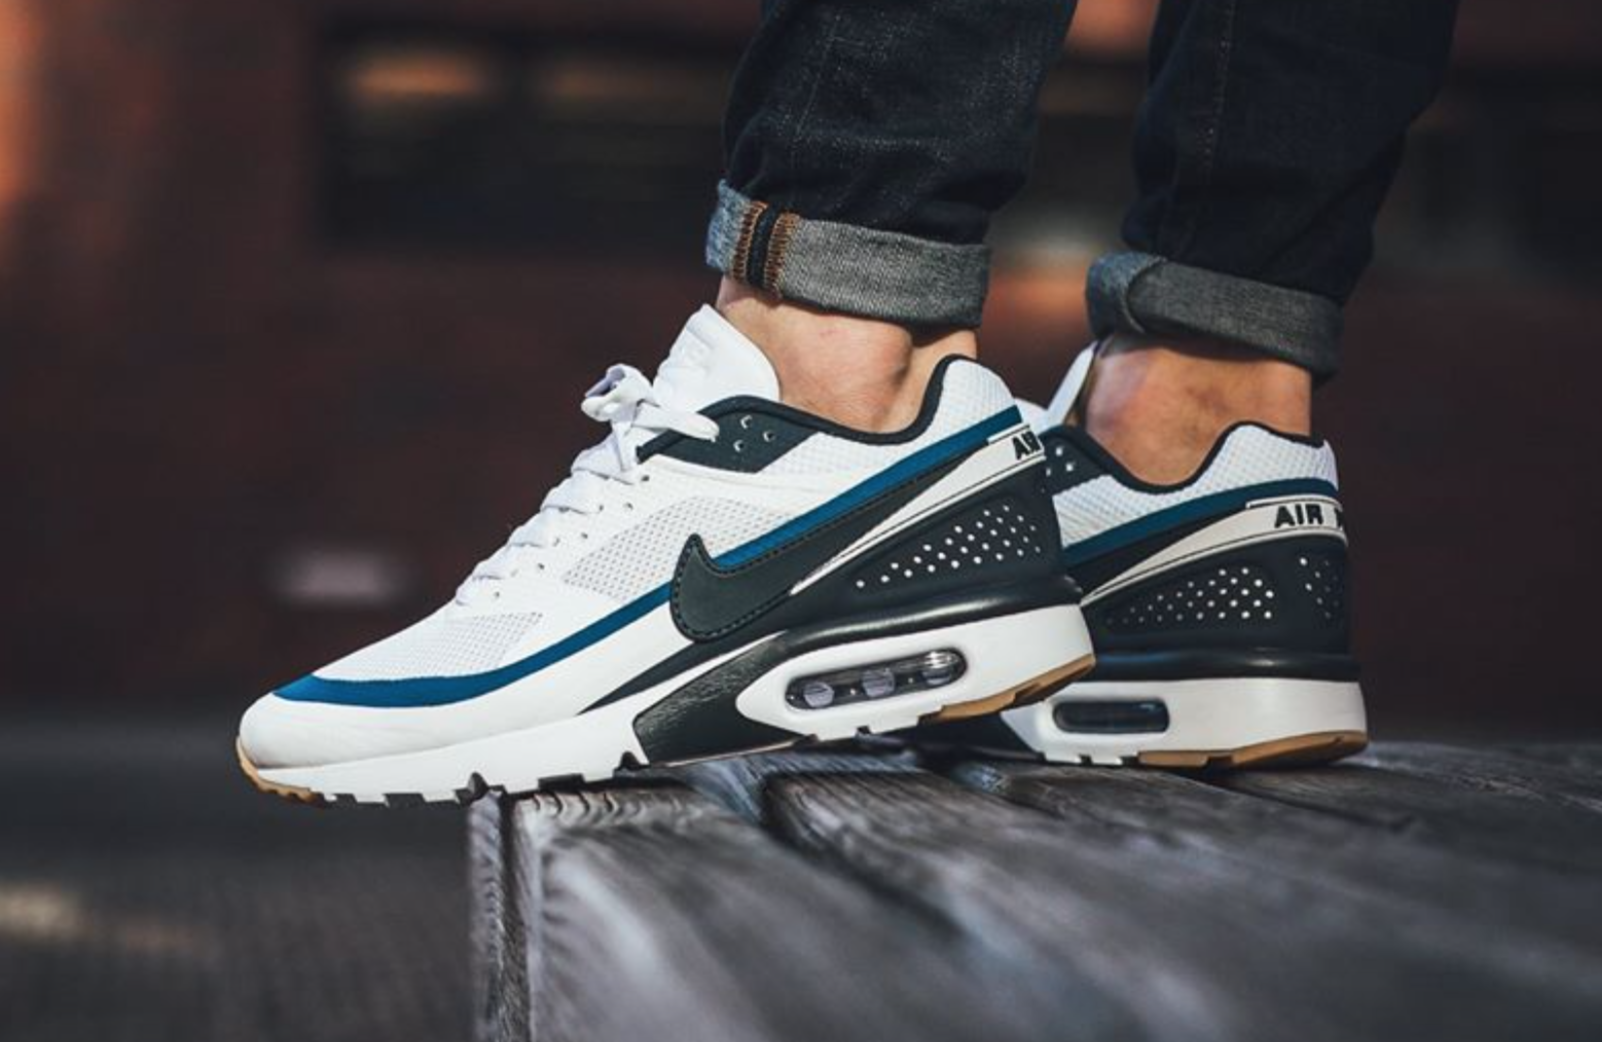 hot sale online 8b3ec 4ab50 Last featured in the classic BRED theme, the Nike Air Max BW Ultra is  treated in another versatile colorway of white armory navy for its  Spring Summer 2017 ...